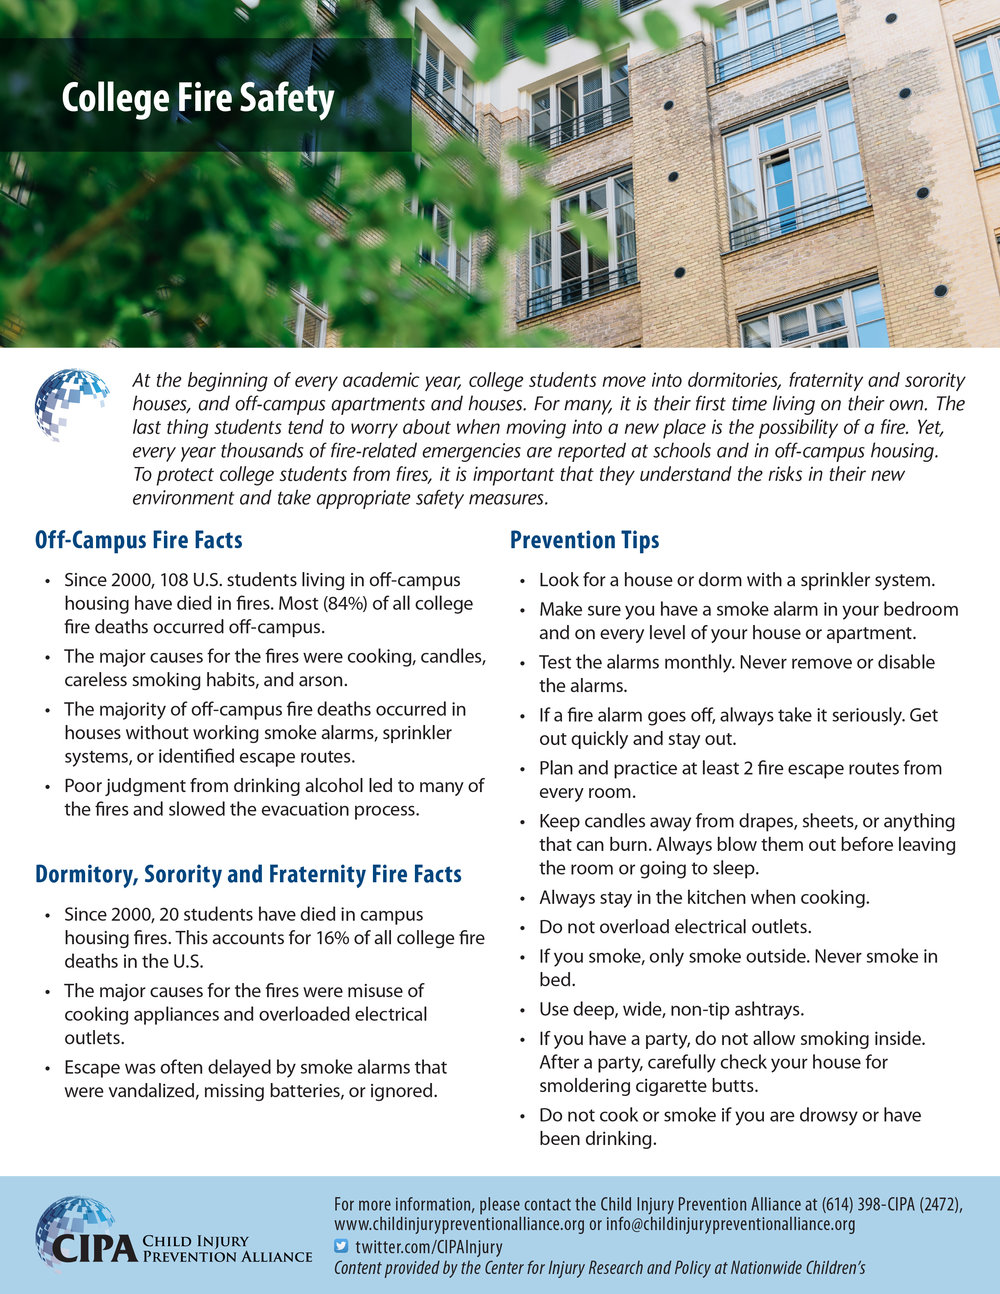 college-fire-safety-fact-sheet.jpg